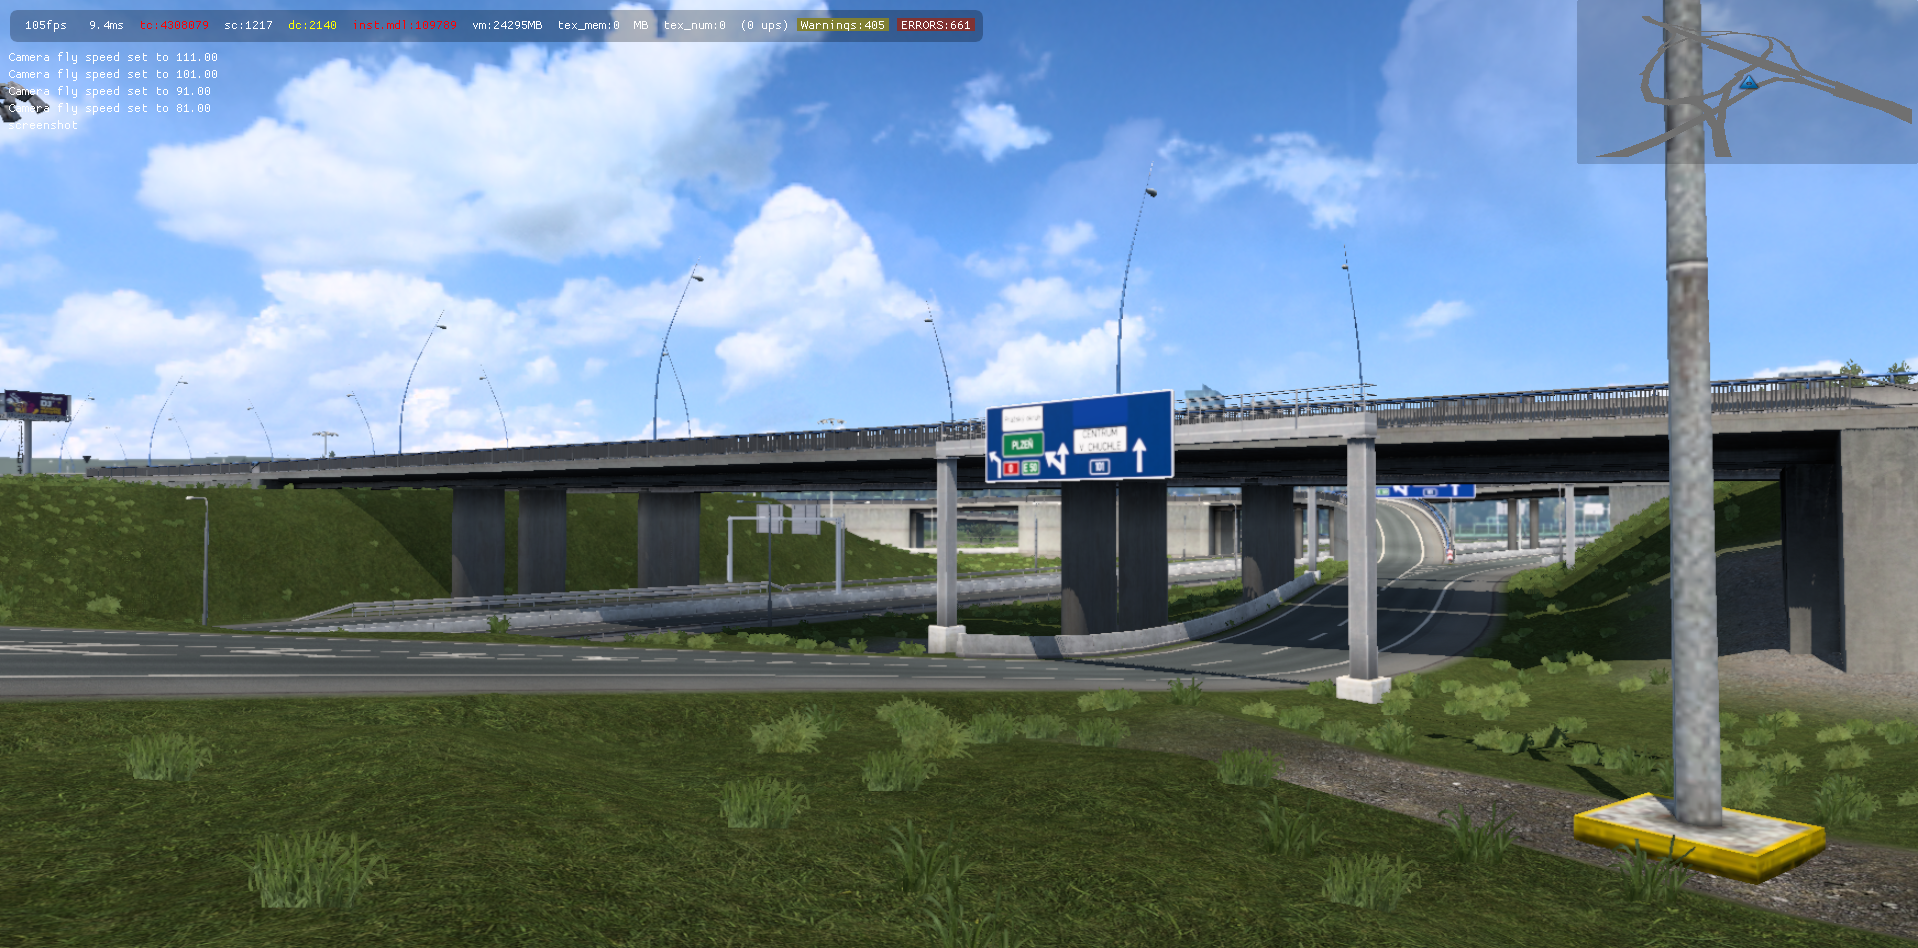 ets2_20210730_000534_00.png